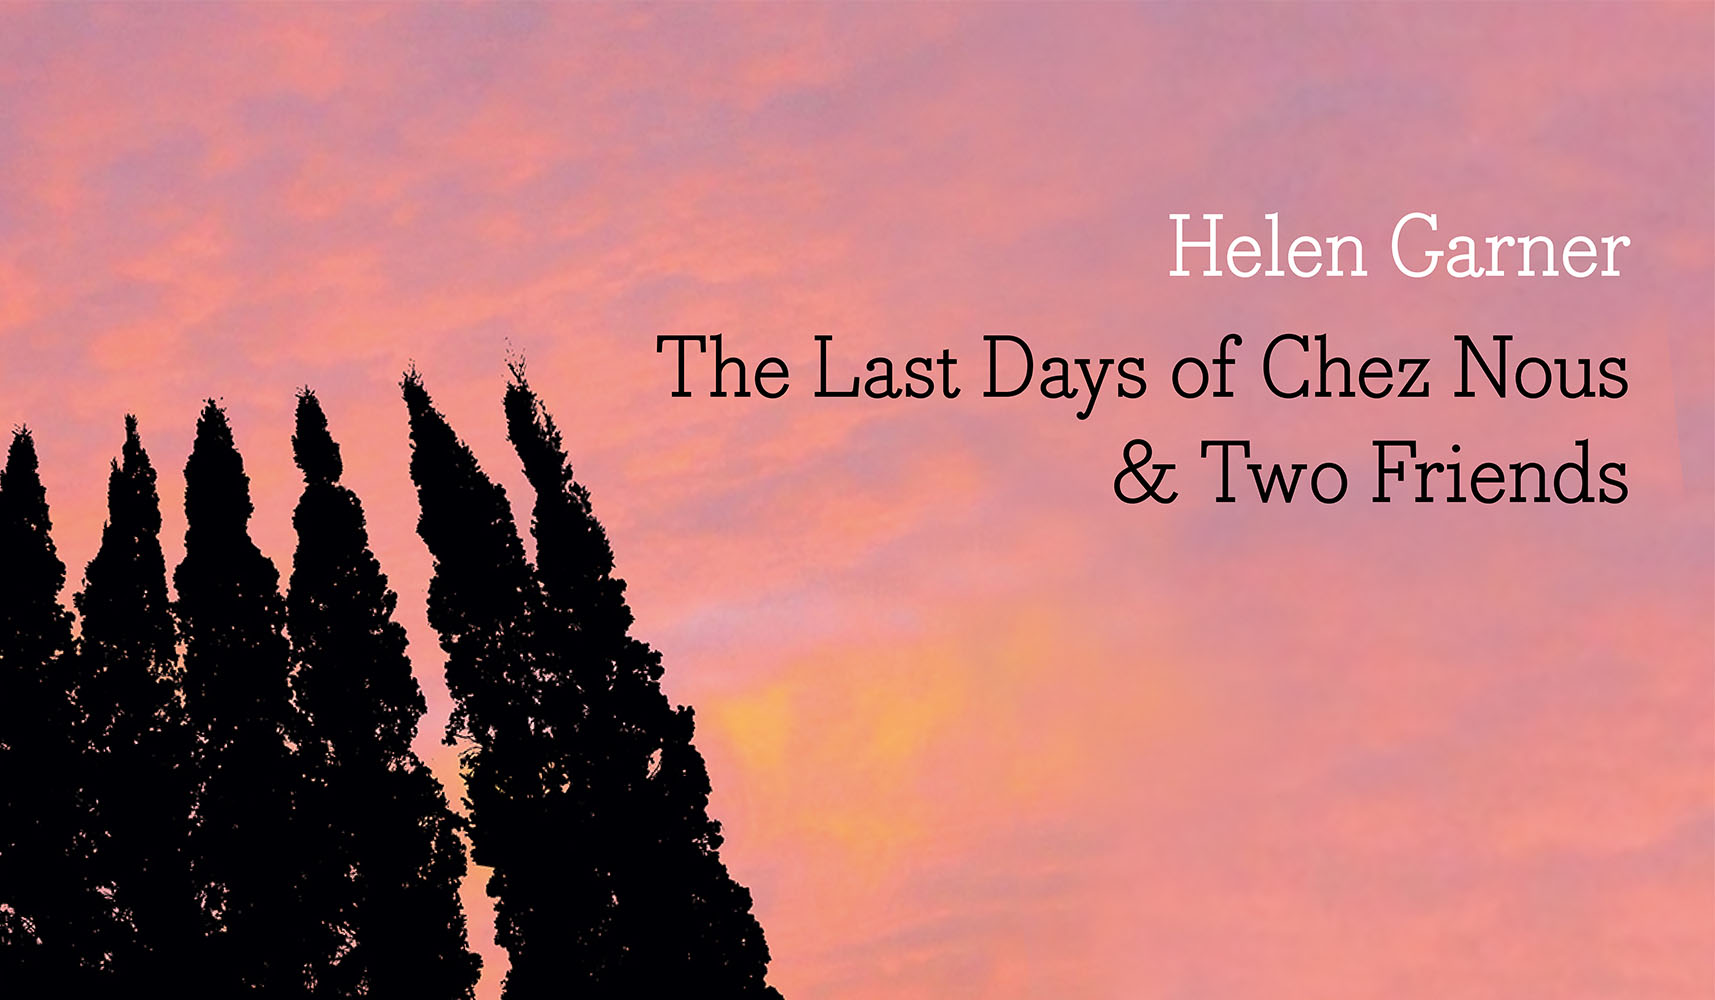 The Last Days of Chez Nous & Two Friends by Helen Garner